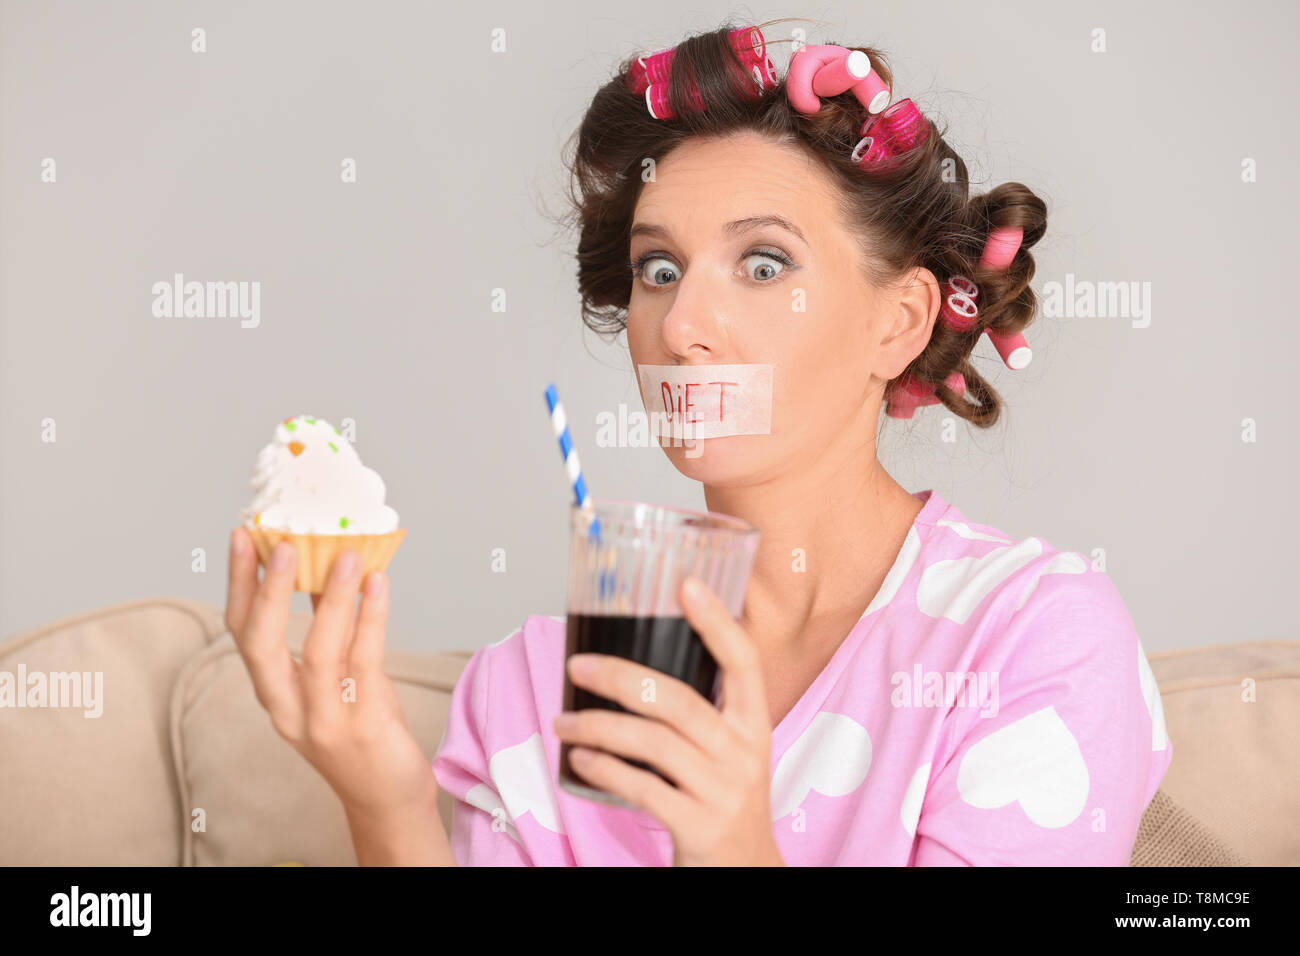 Stressful woman with taped mouth and unhealthy food at home. Diet concept - Stock Image